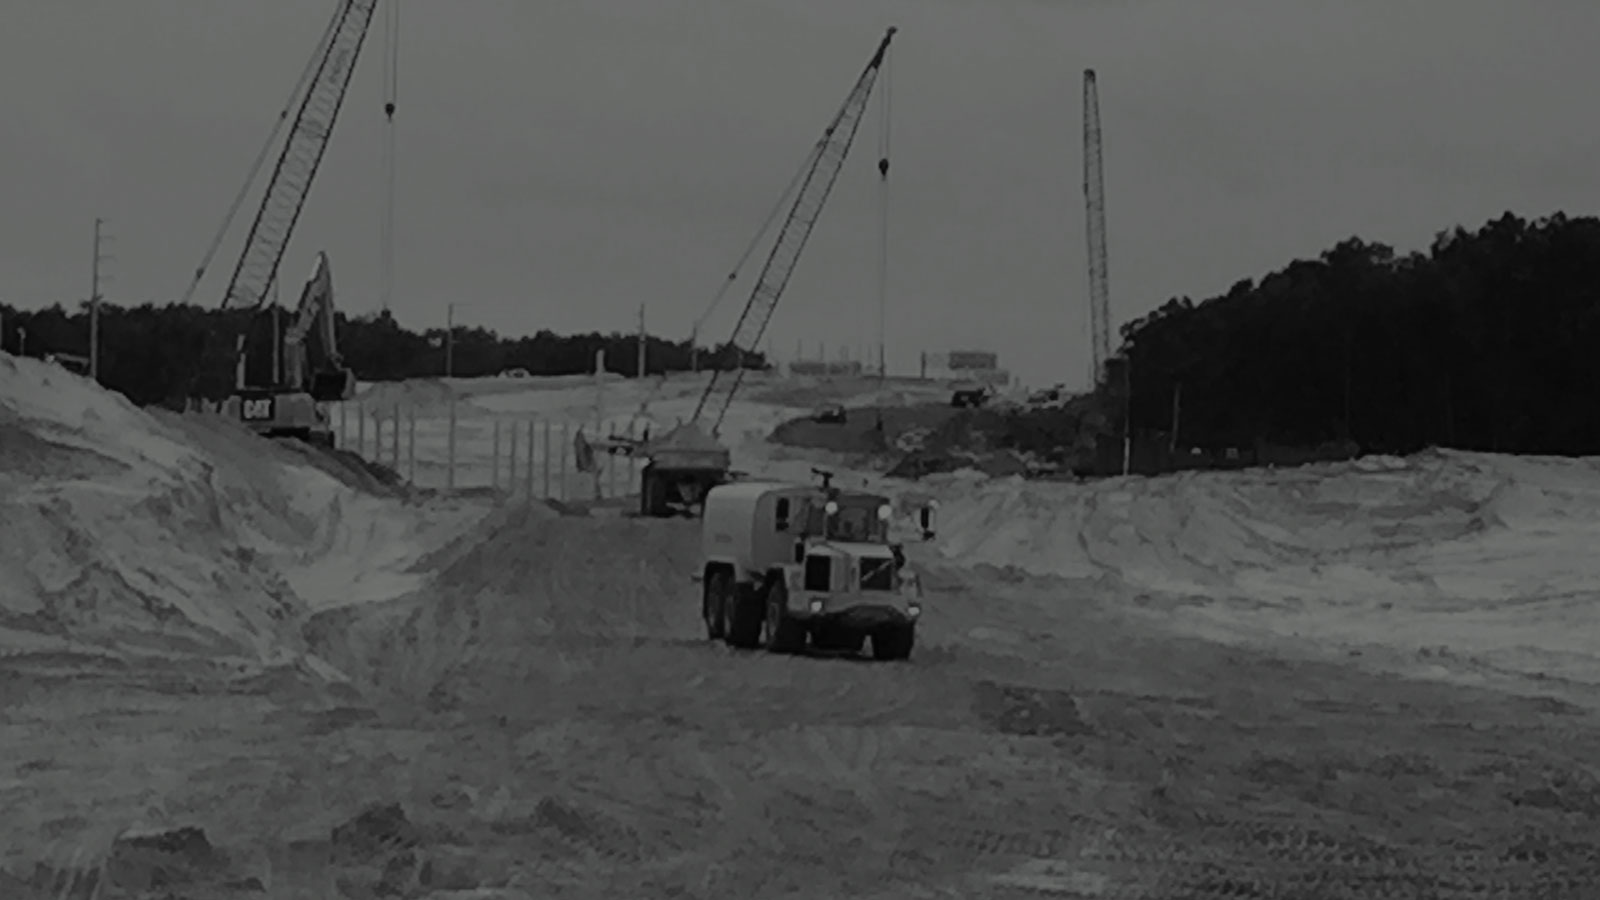 Construction equipment working to build Central Florida Expressway Wekiva Parkway